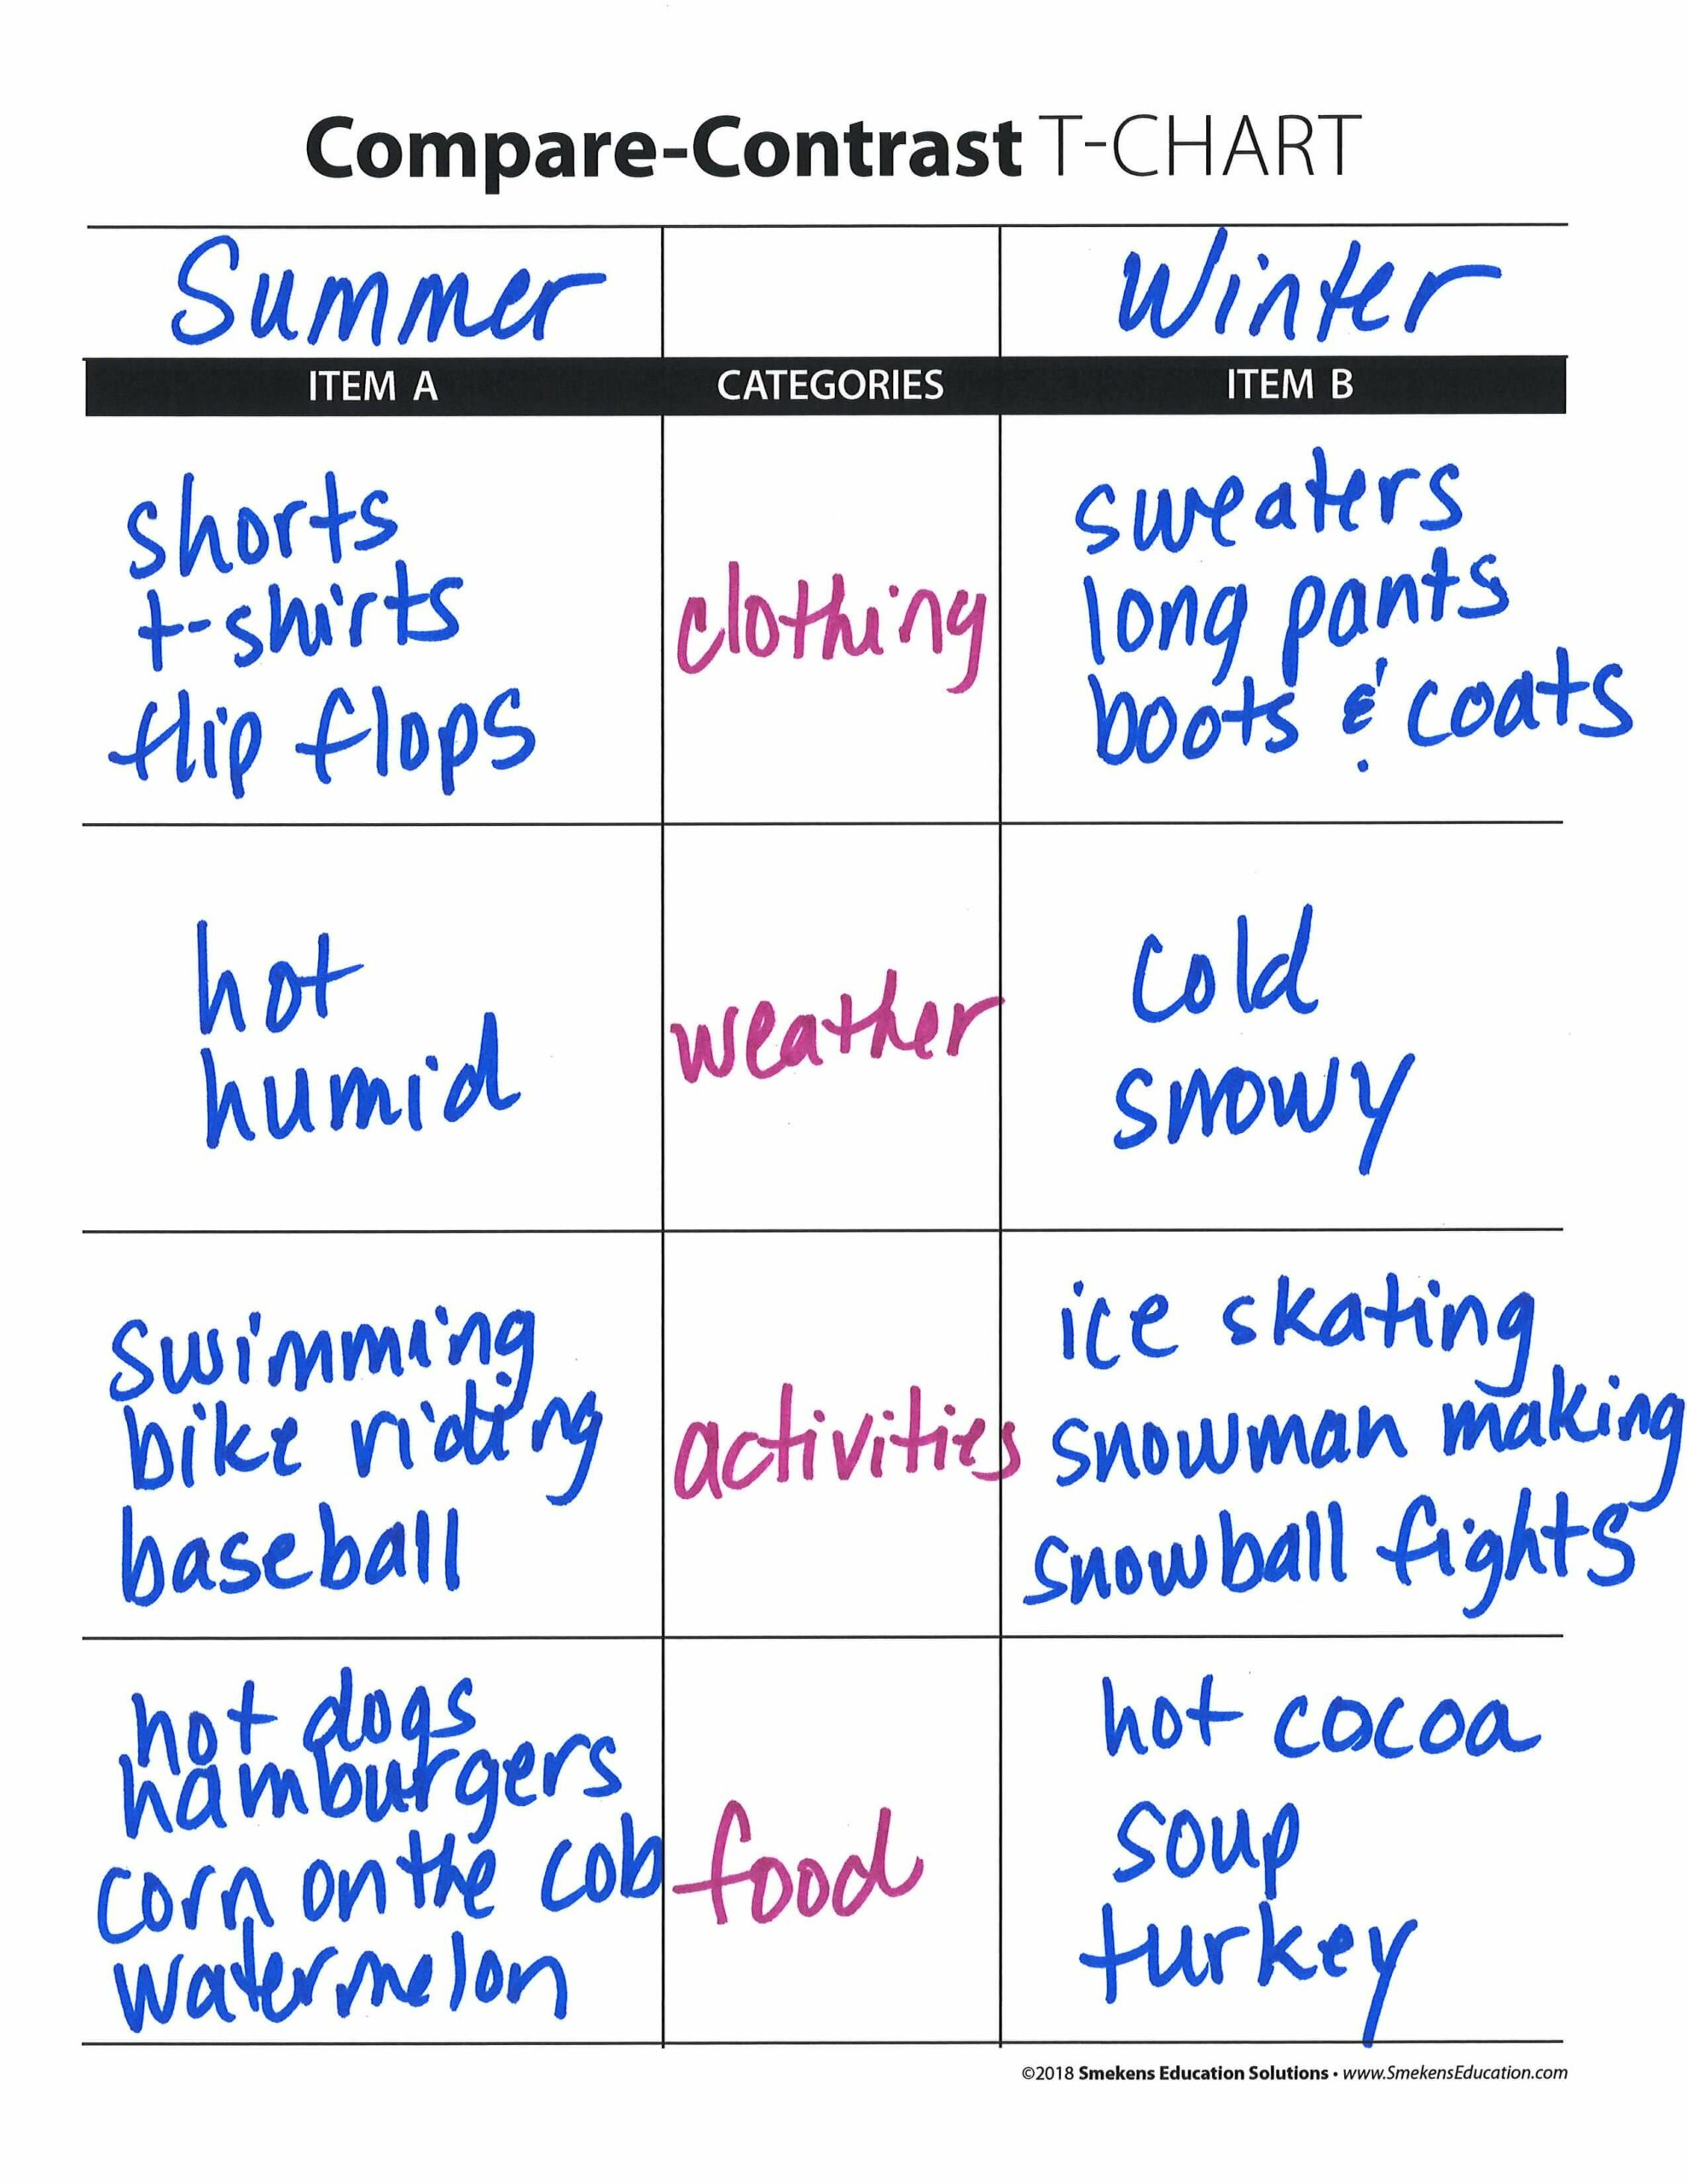 Compare-Contrast T-Chart - Summer v Winter with 4 Categories